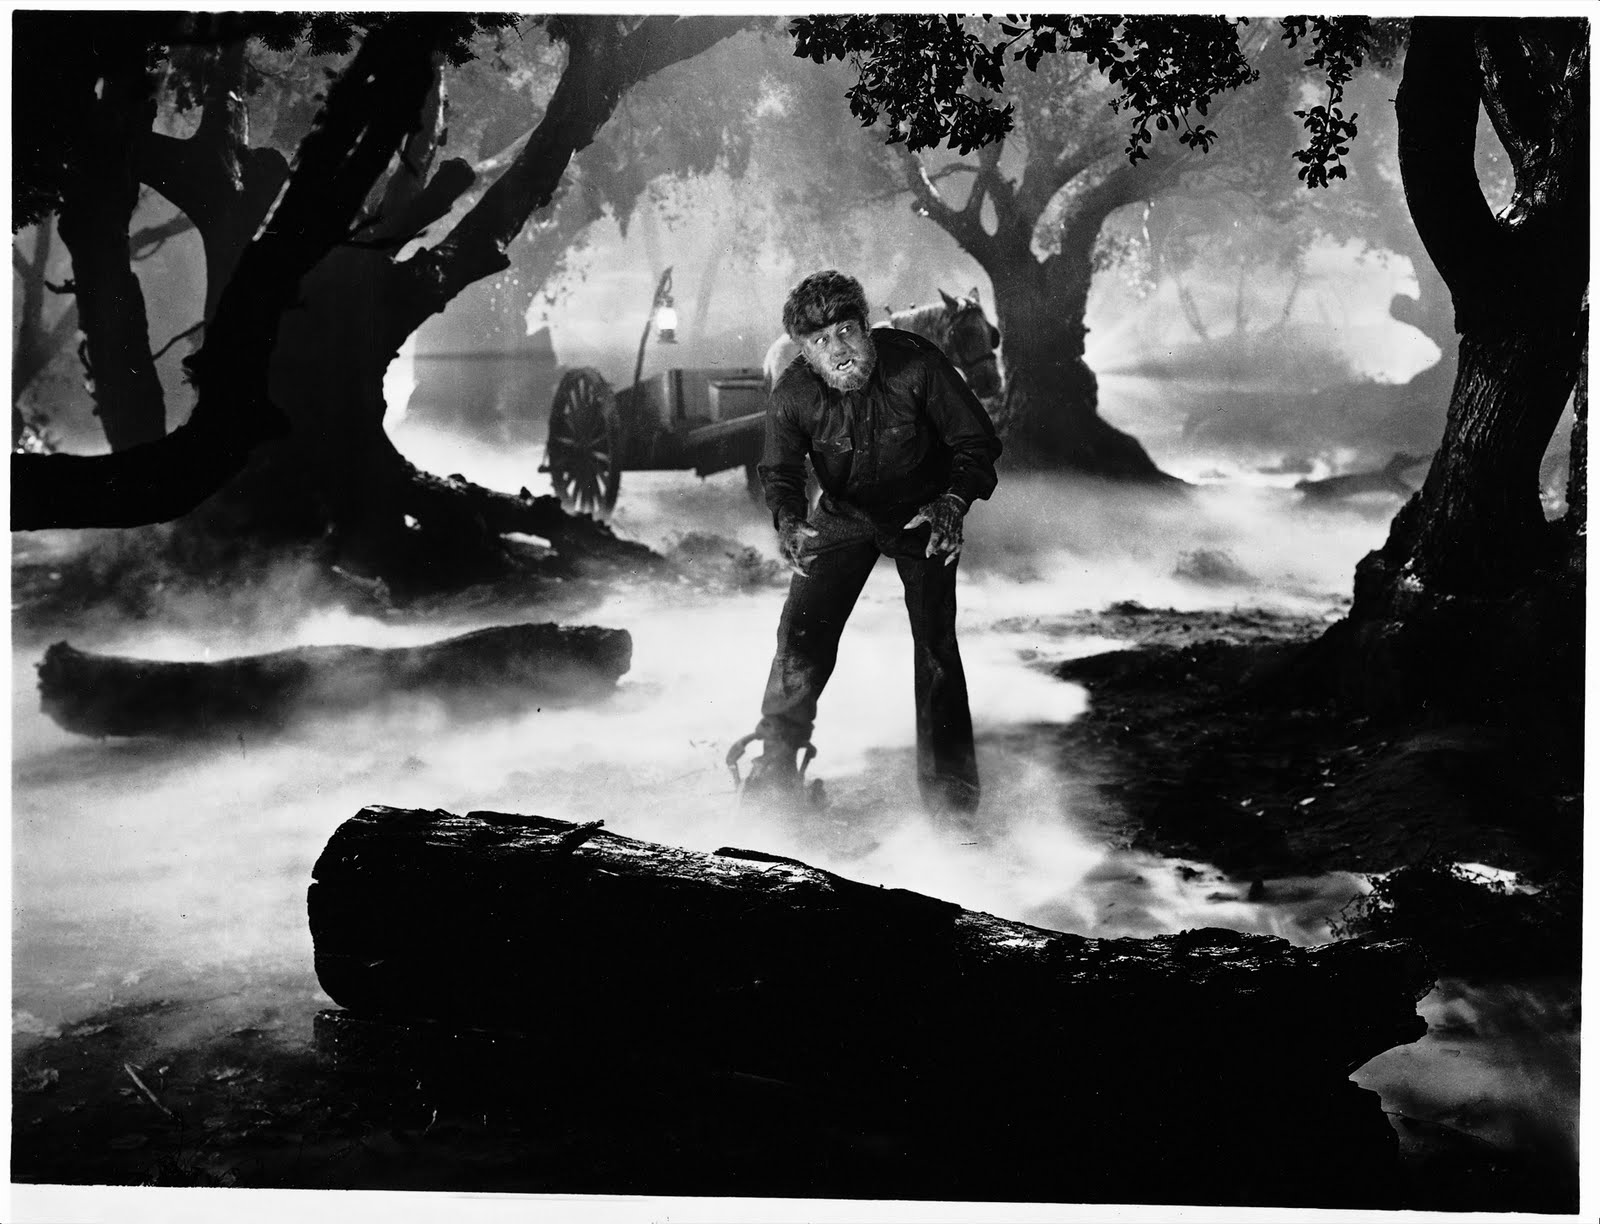 the wolf man images newclubimage hd wallpaper and background photos